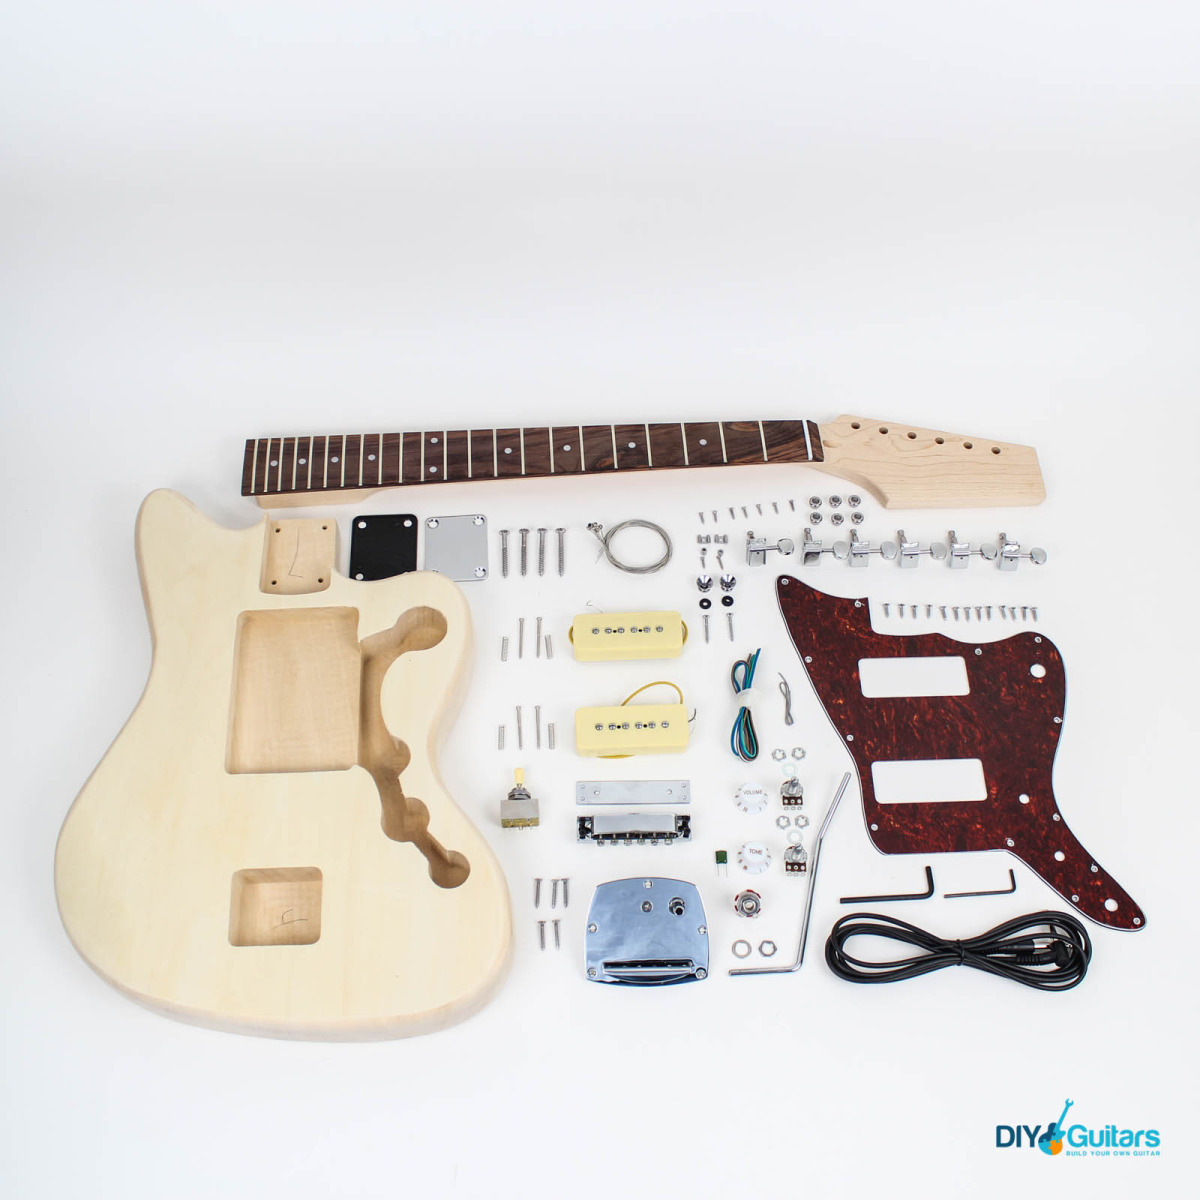 Jazzmaster style guitar kit diy guitars headstock complete kit contents solutioingenieria Image collections